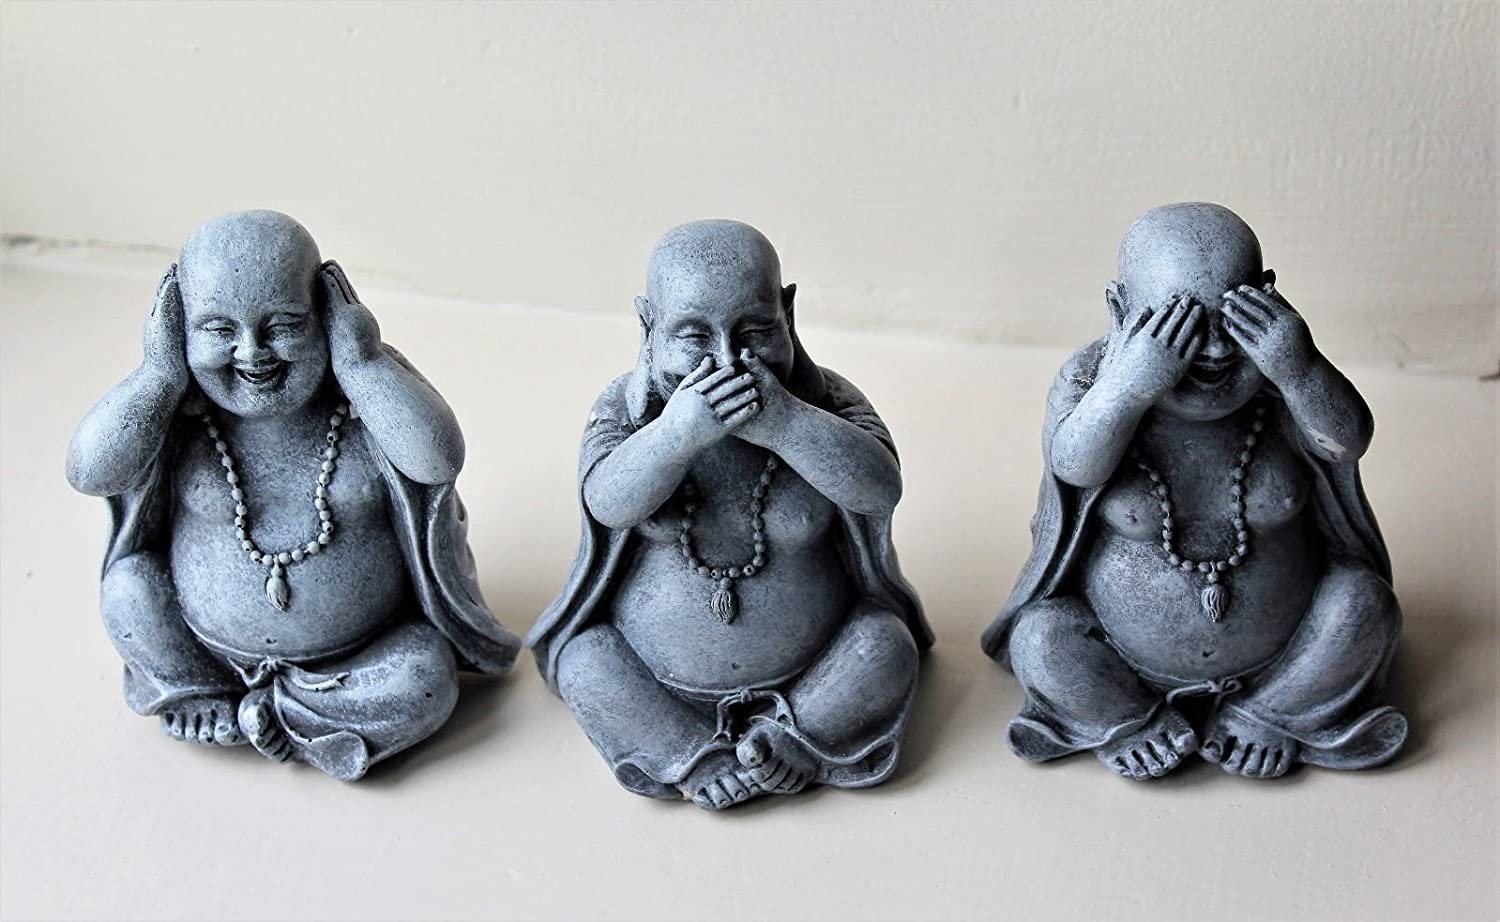 3 WISE HAPPY BUDDHA ORNAMENTS DECOR,HEAR NO, SEE NO, SPEAK NO EVIL (Large) Home and Garden Products Ltd